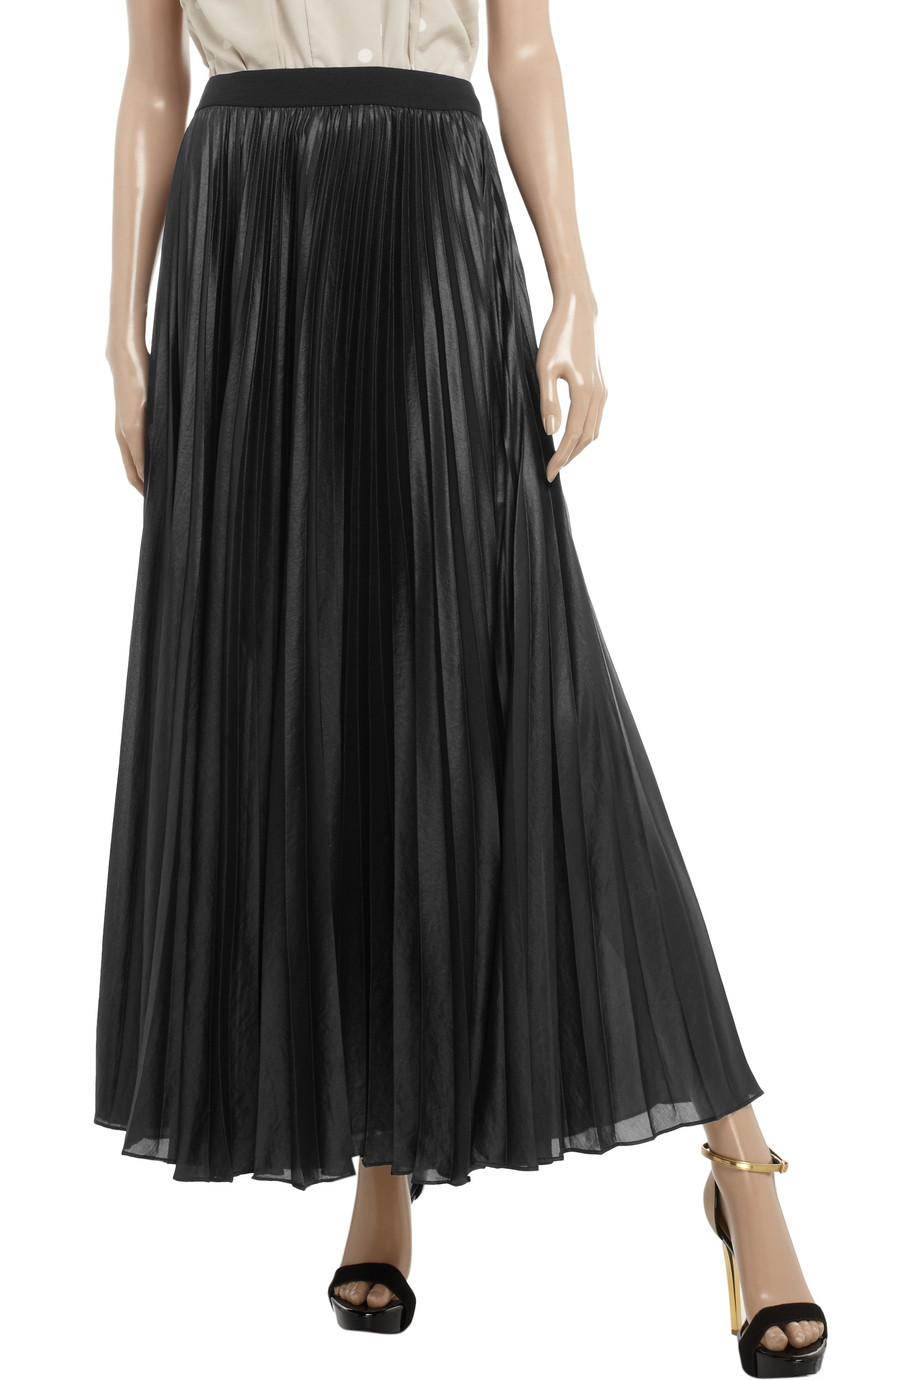 Discover maxi skirts with ASOS. Our long skirts are voluminous, with wafting chiffon pleats and in bold colours for casual day wear or for a stylish evening out. Outrageous Fortune sequin maxi wrap skirt with front split in black. £ Needle & Thread tulle maxi skirt in purple.